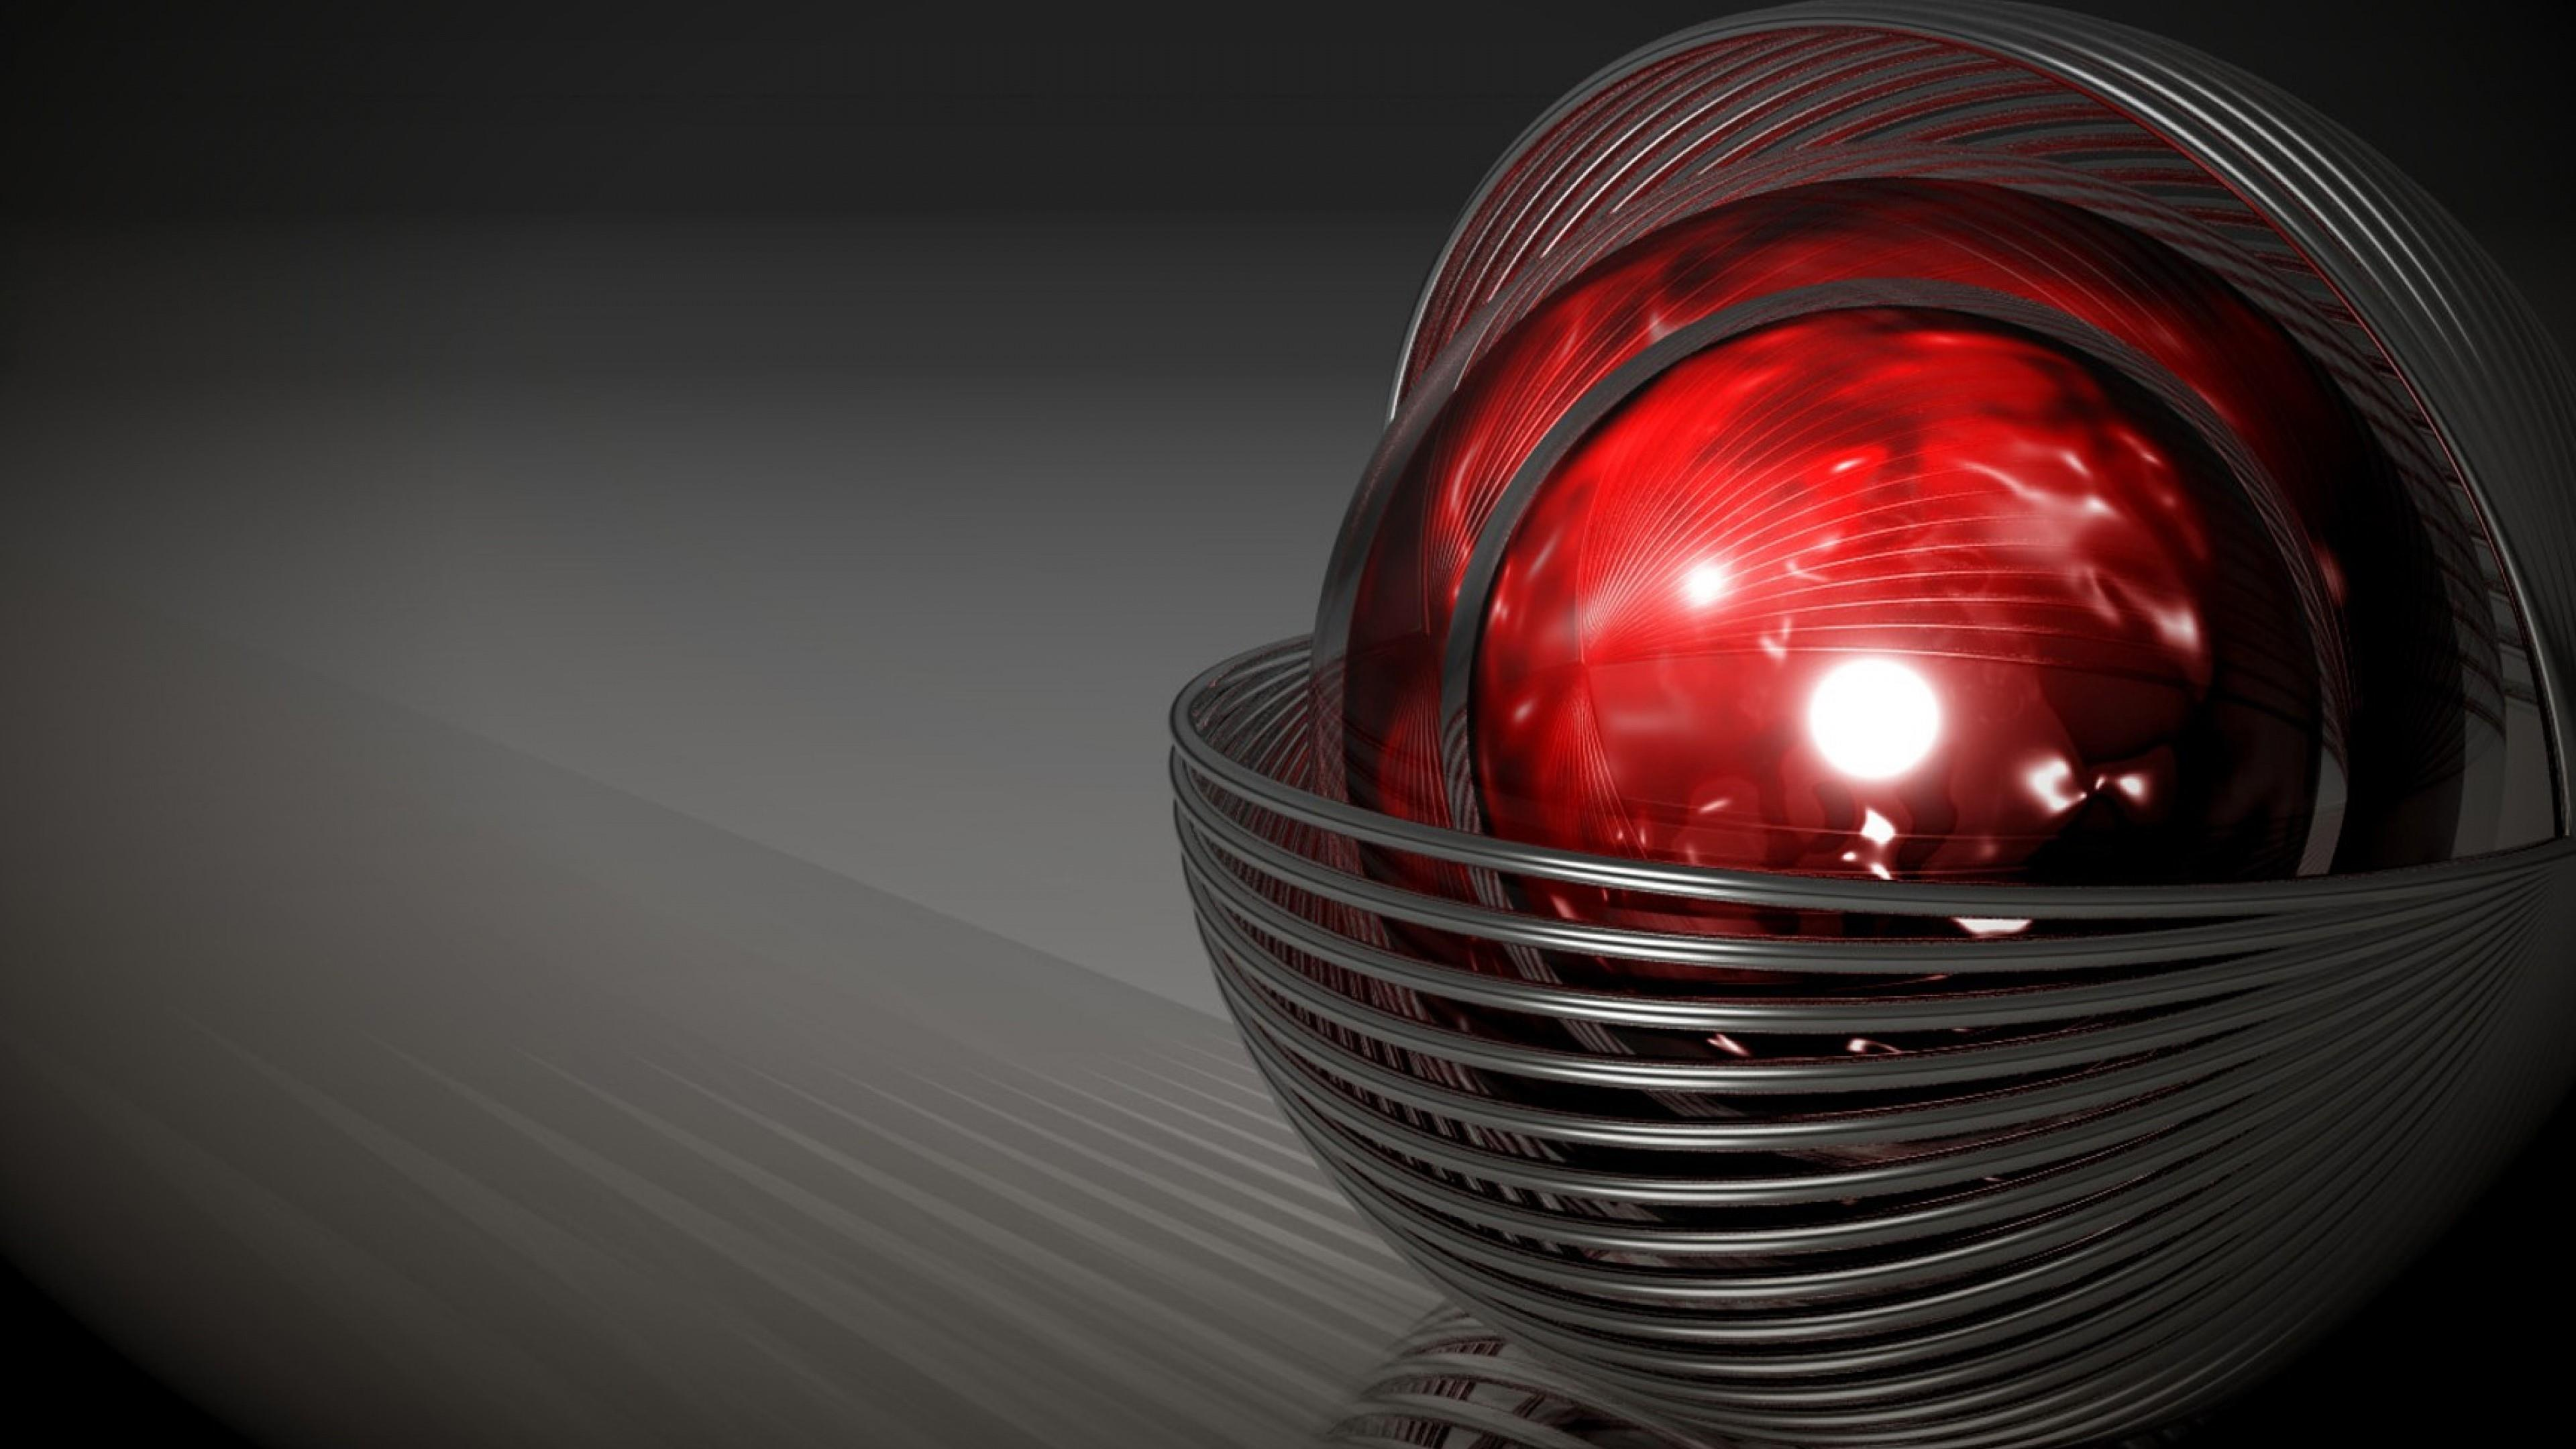 3D red sphere computer graphics wallpaper